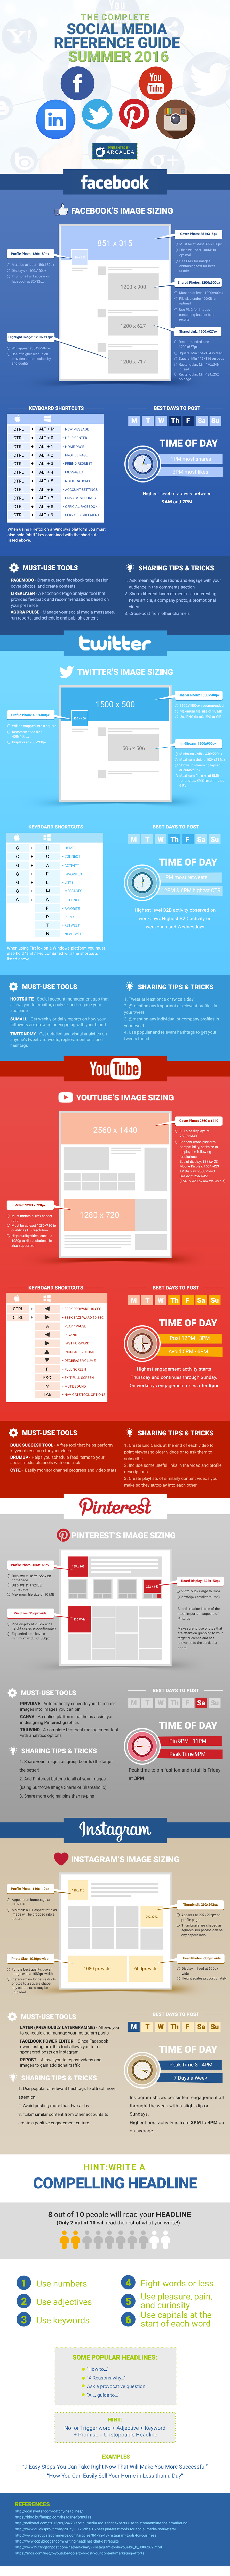 The Complete Social Media Reference Guide Summer 2016 #Infographic